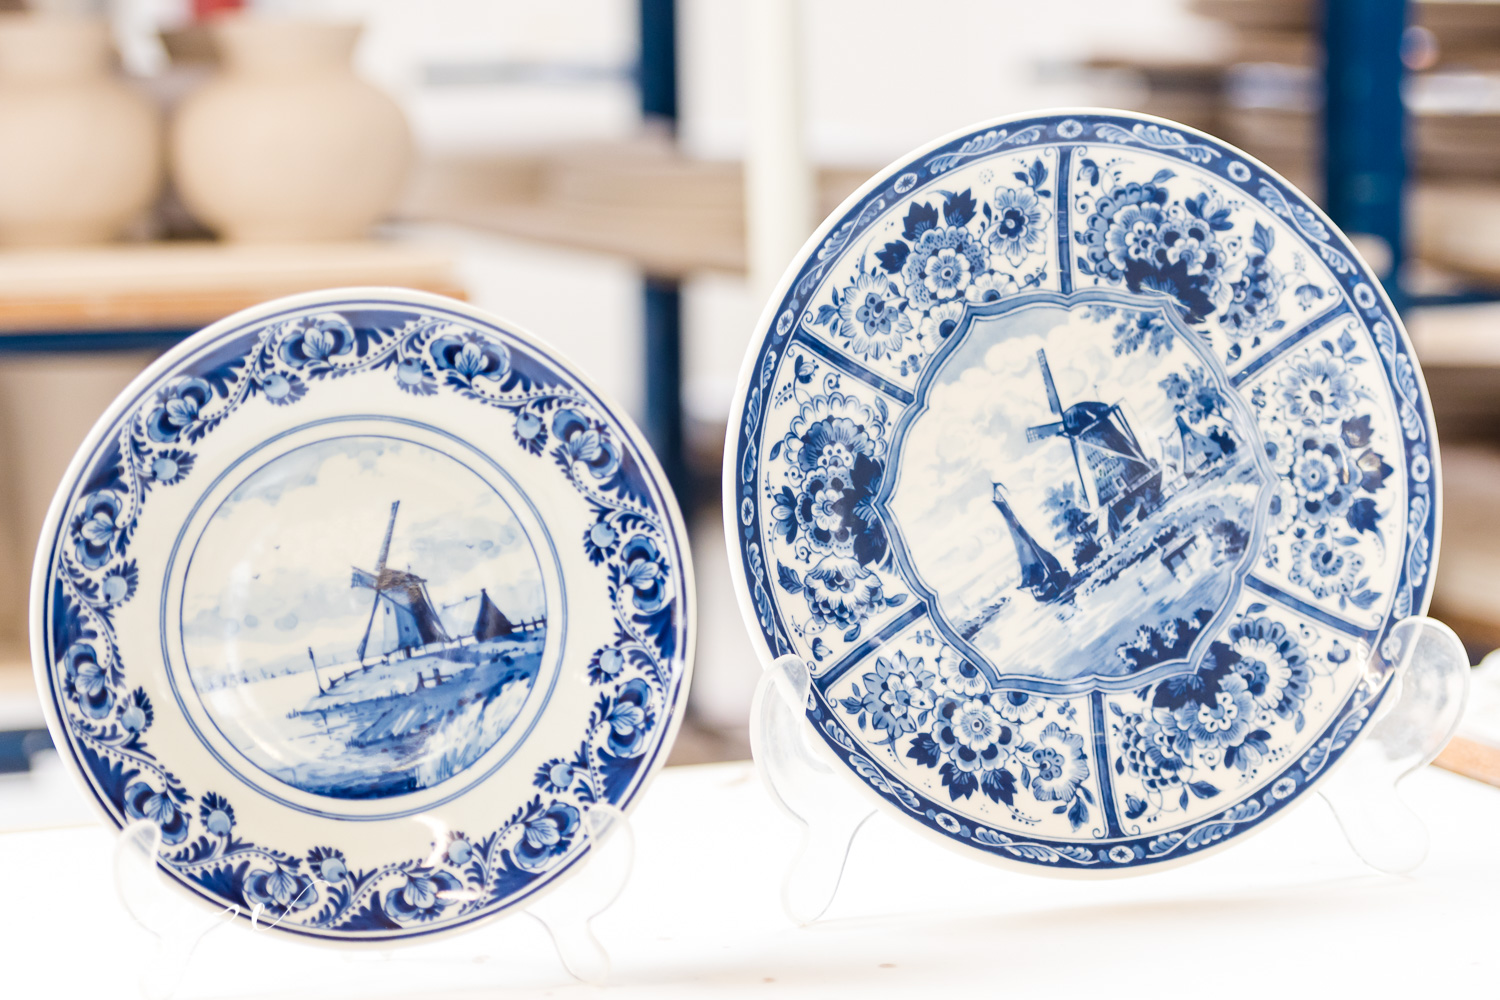 Delft Pottery Museum, Dutch Painting, The Netherlands, Travel Photography, Breeze Pics